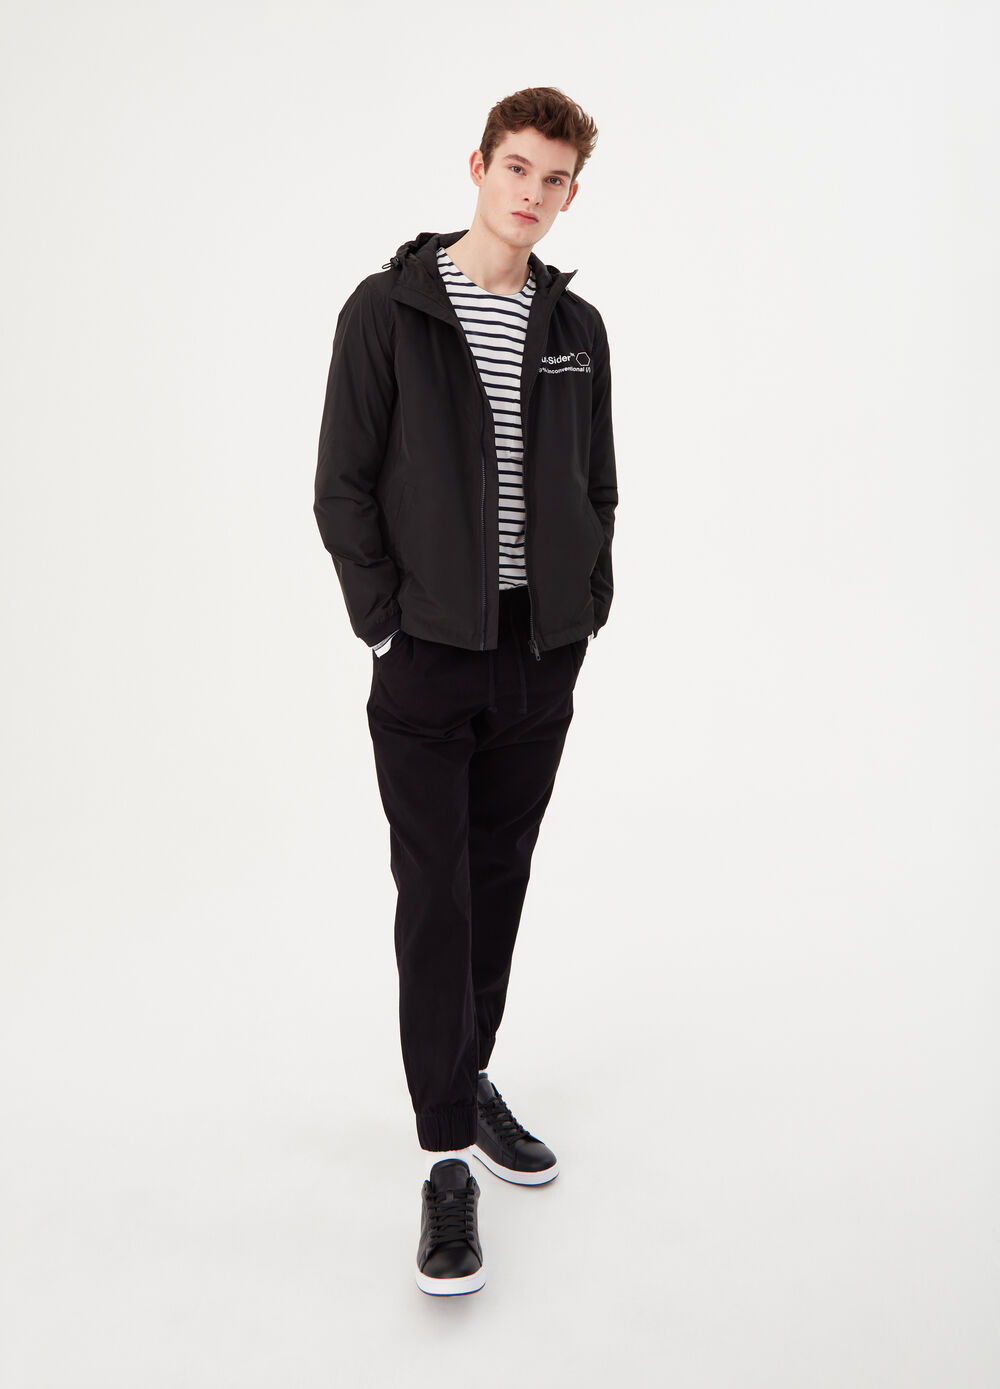 Solid colour jacket with lettering print